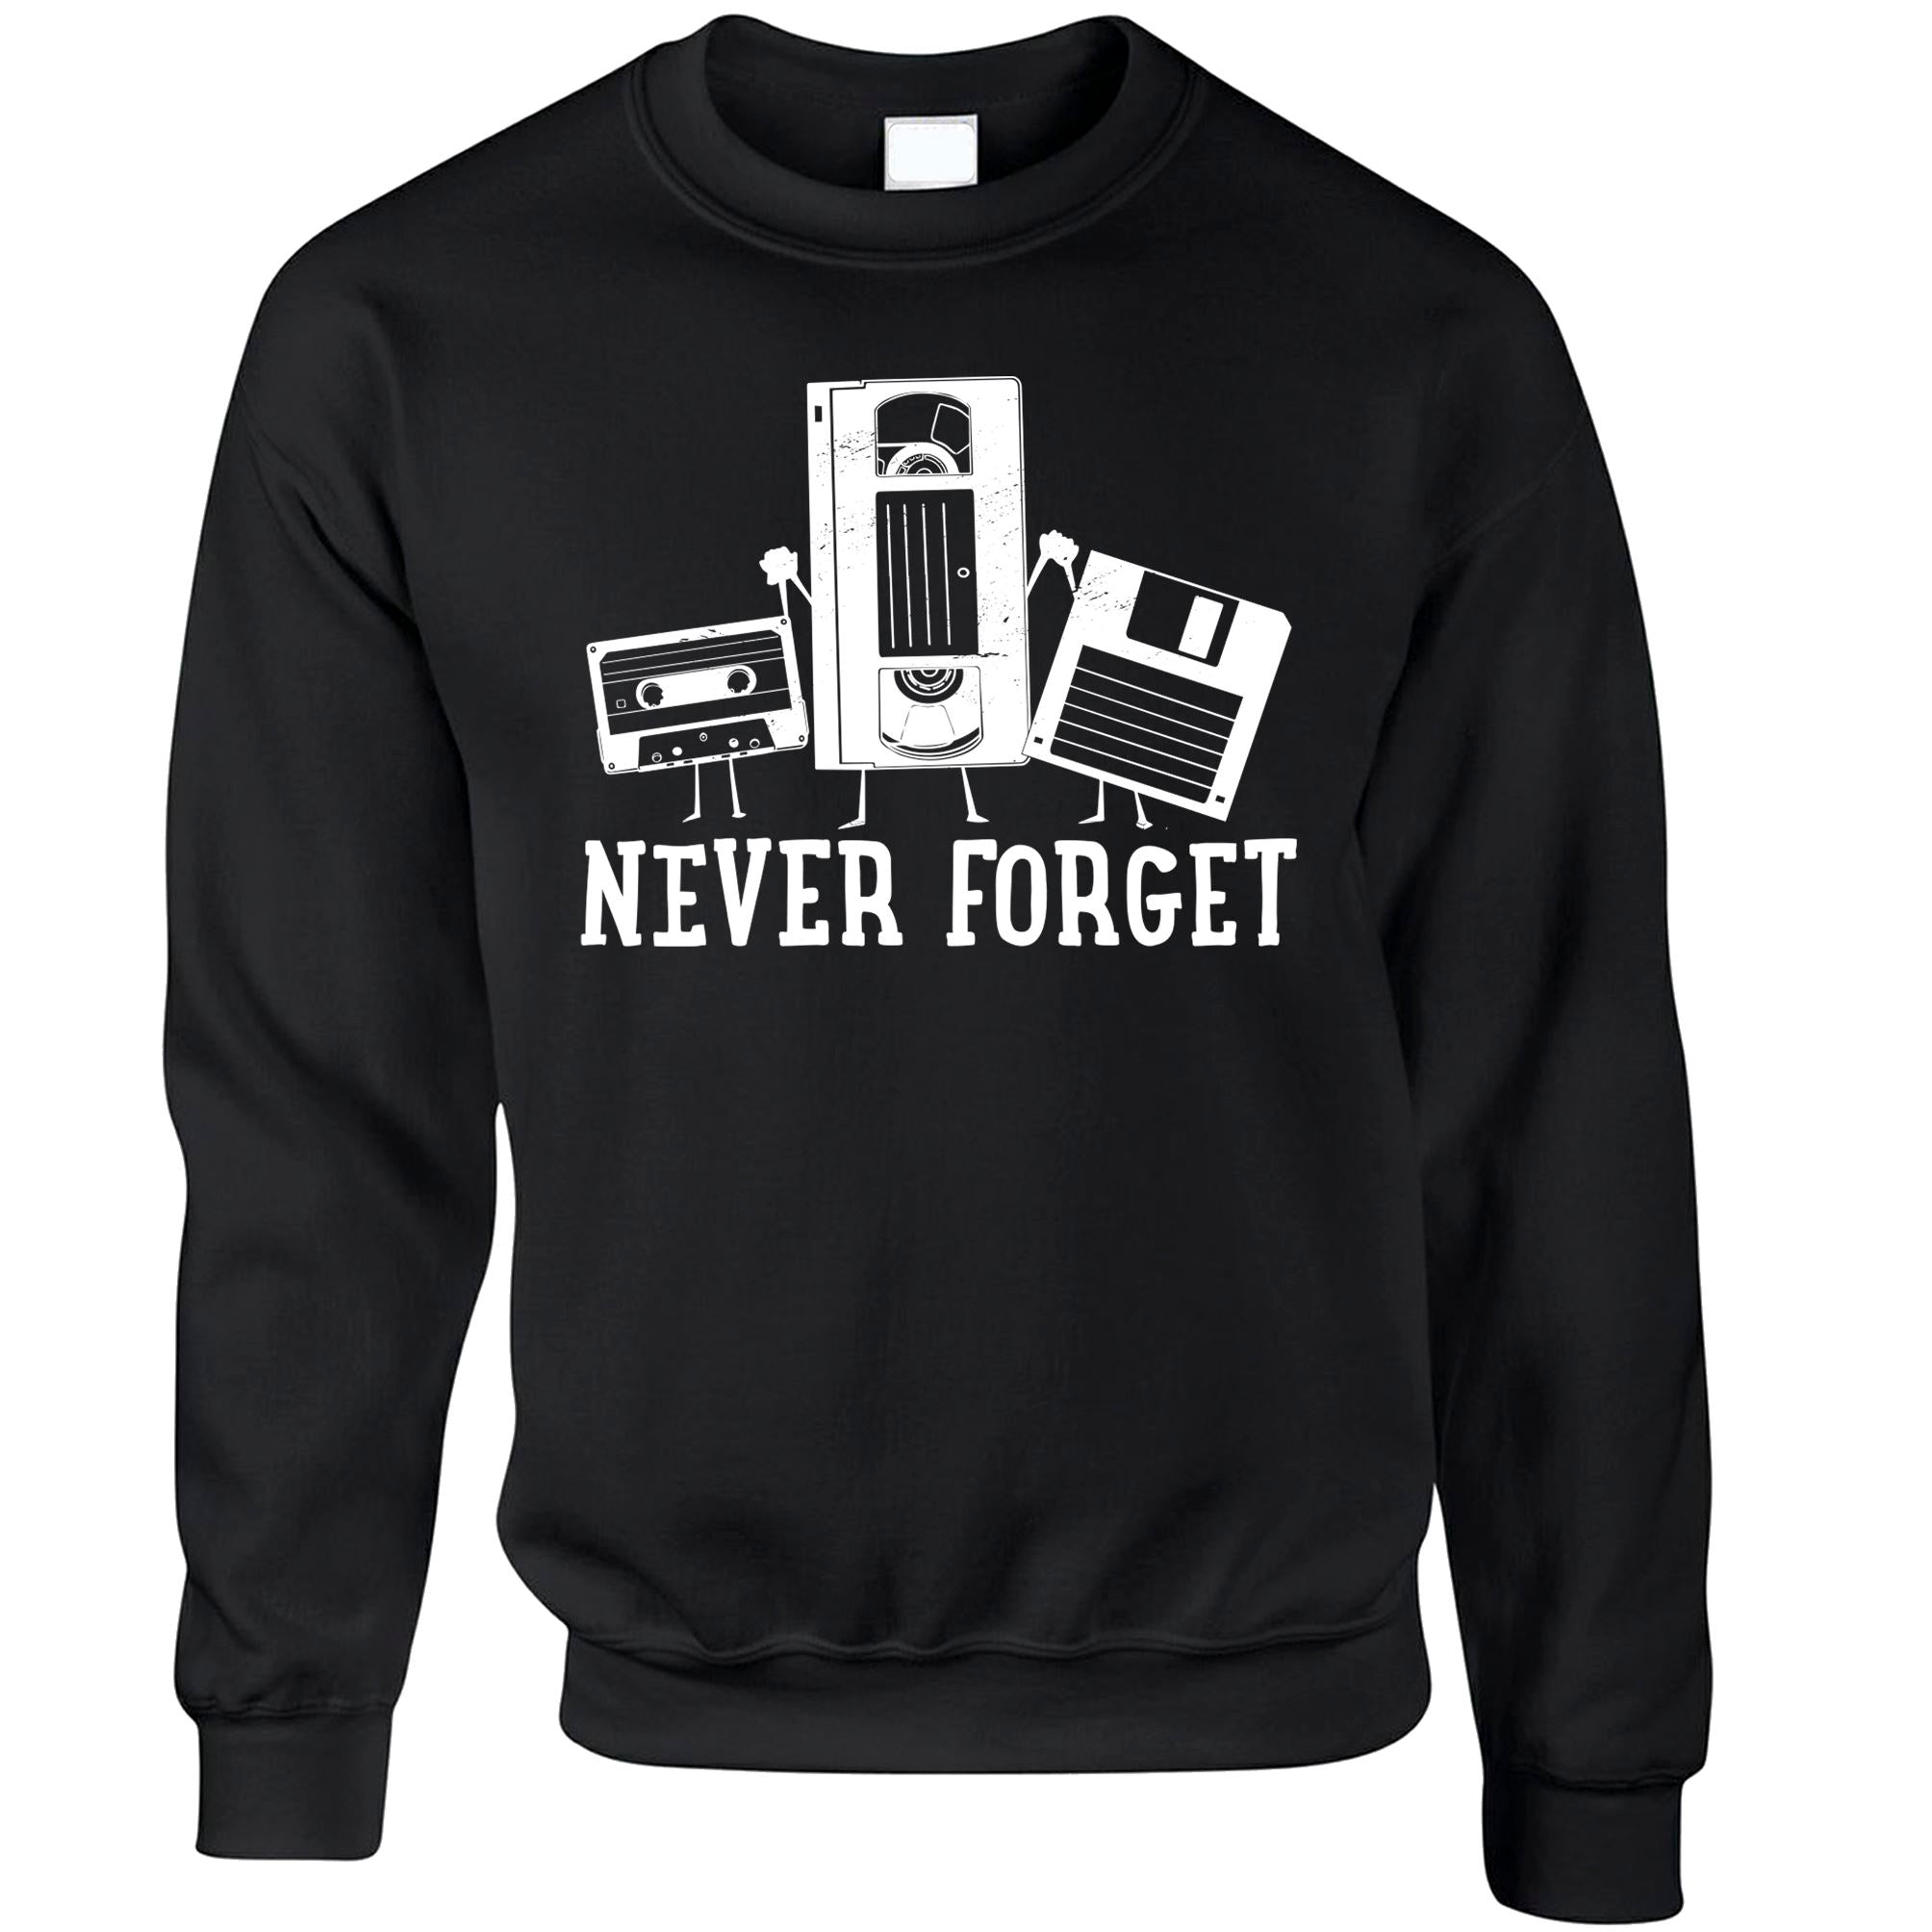 Retro Jumper Never Forget VHS and Floppy Discs Sweatshirt Sweater